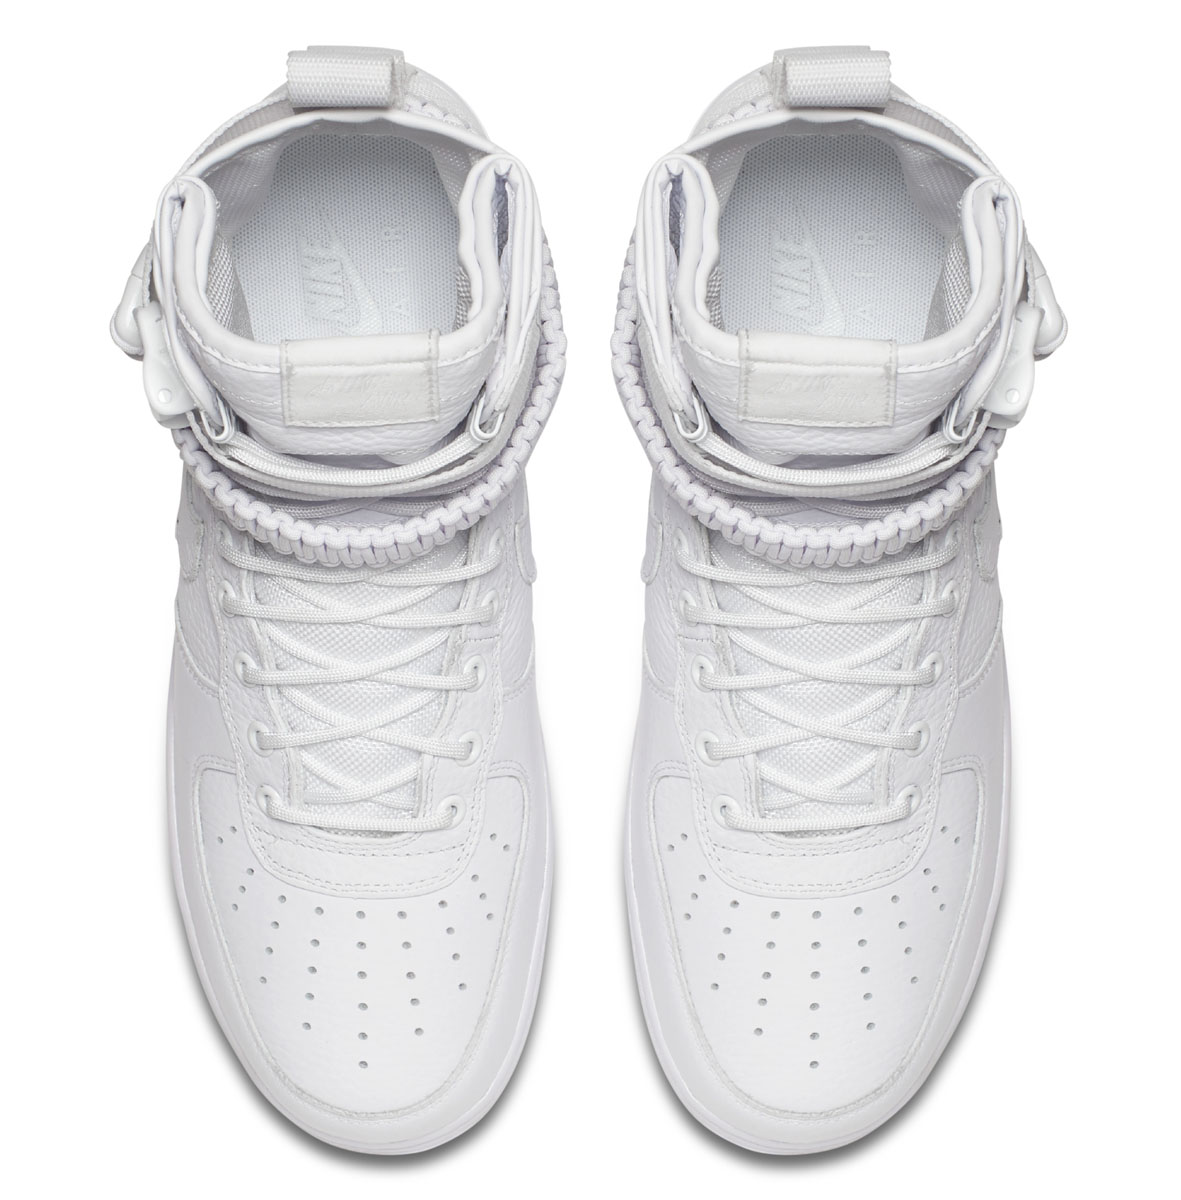 Nike AF Air Force 1 High White Release Date Top 903270-100